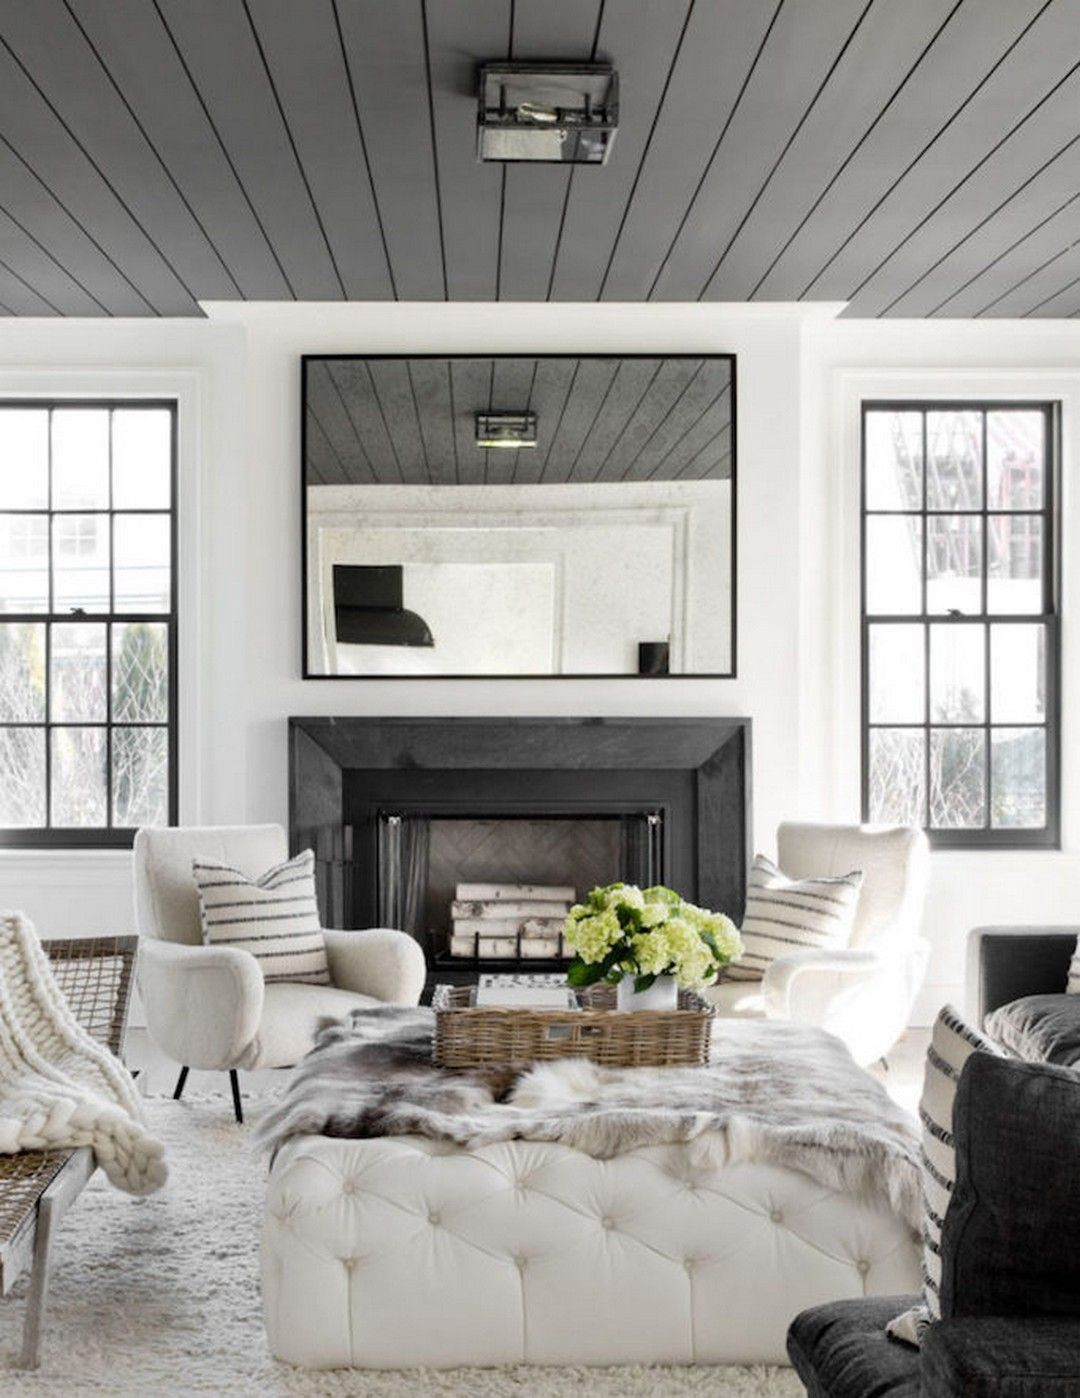 awesome Simple Modern Farmhouse Interior Design